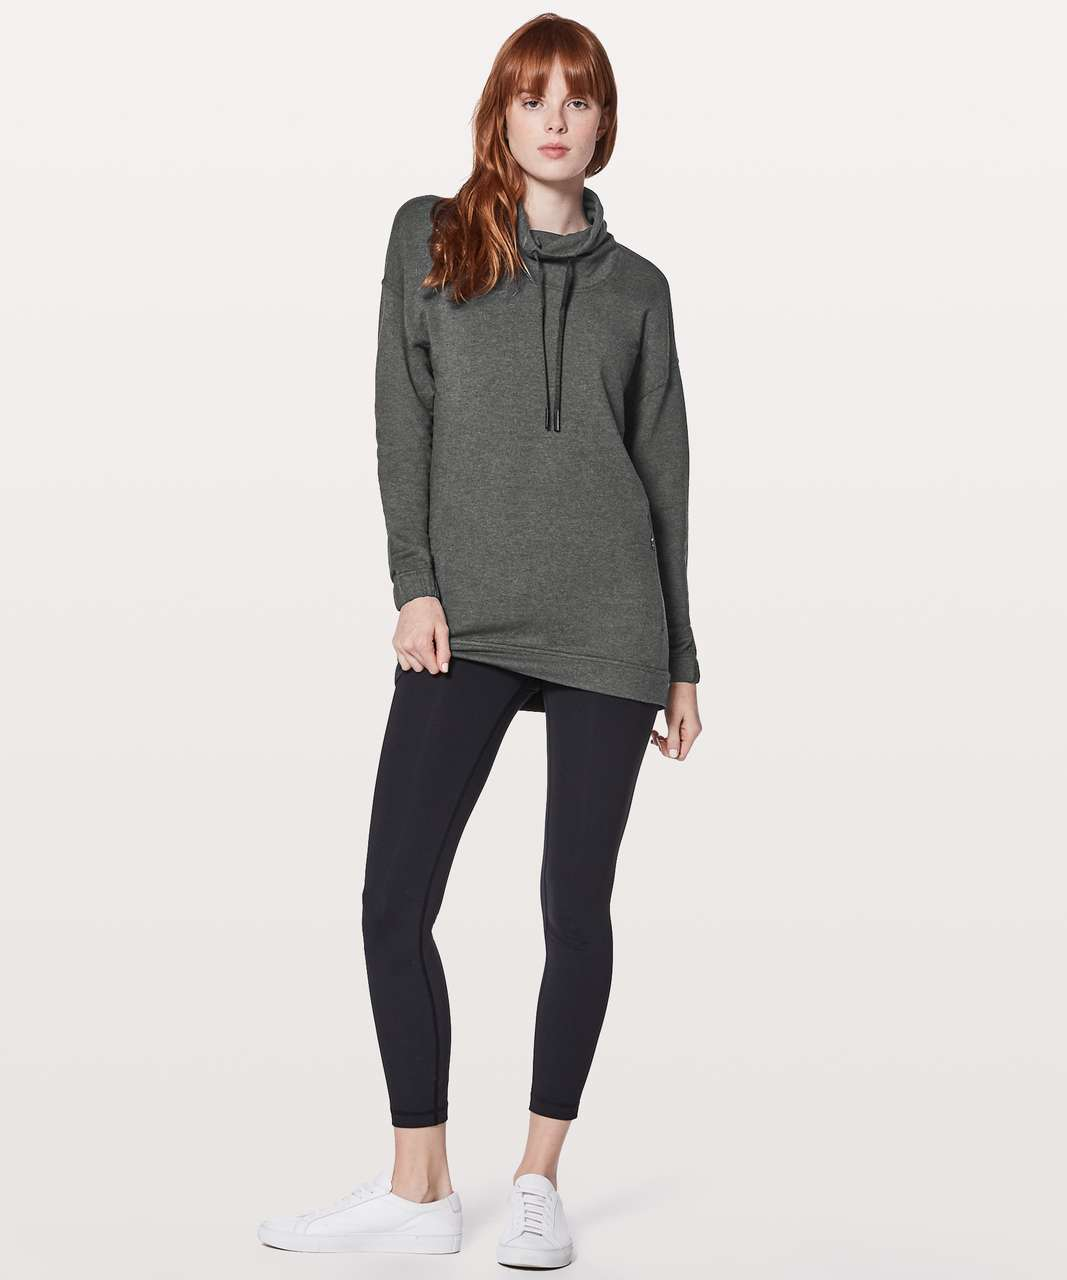 Lululemon Twisted & Tucked Long Sleeve - Heathered Mod Black